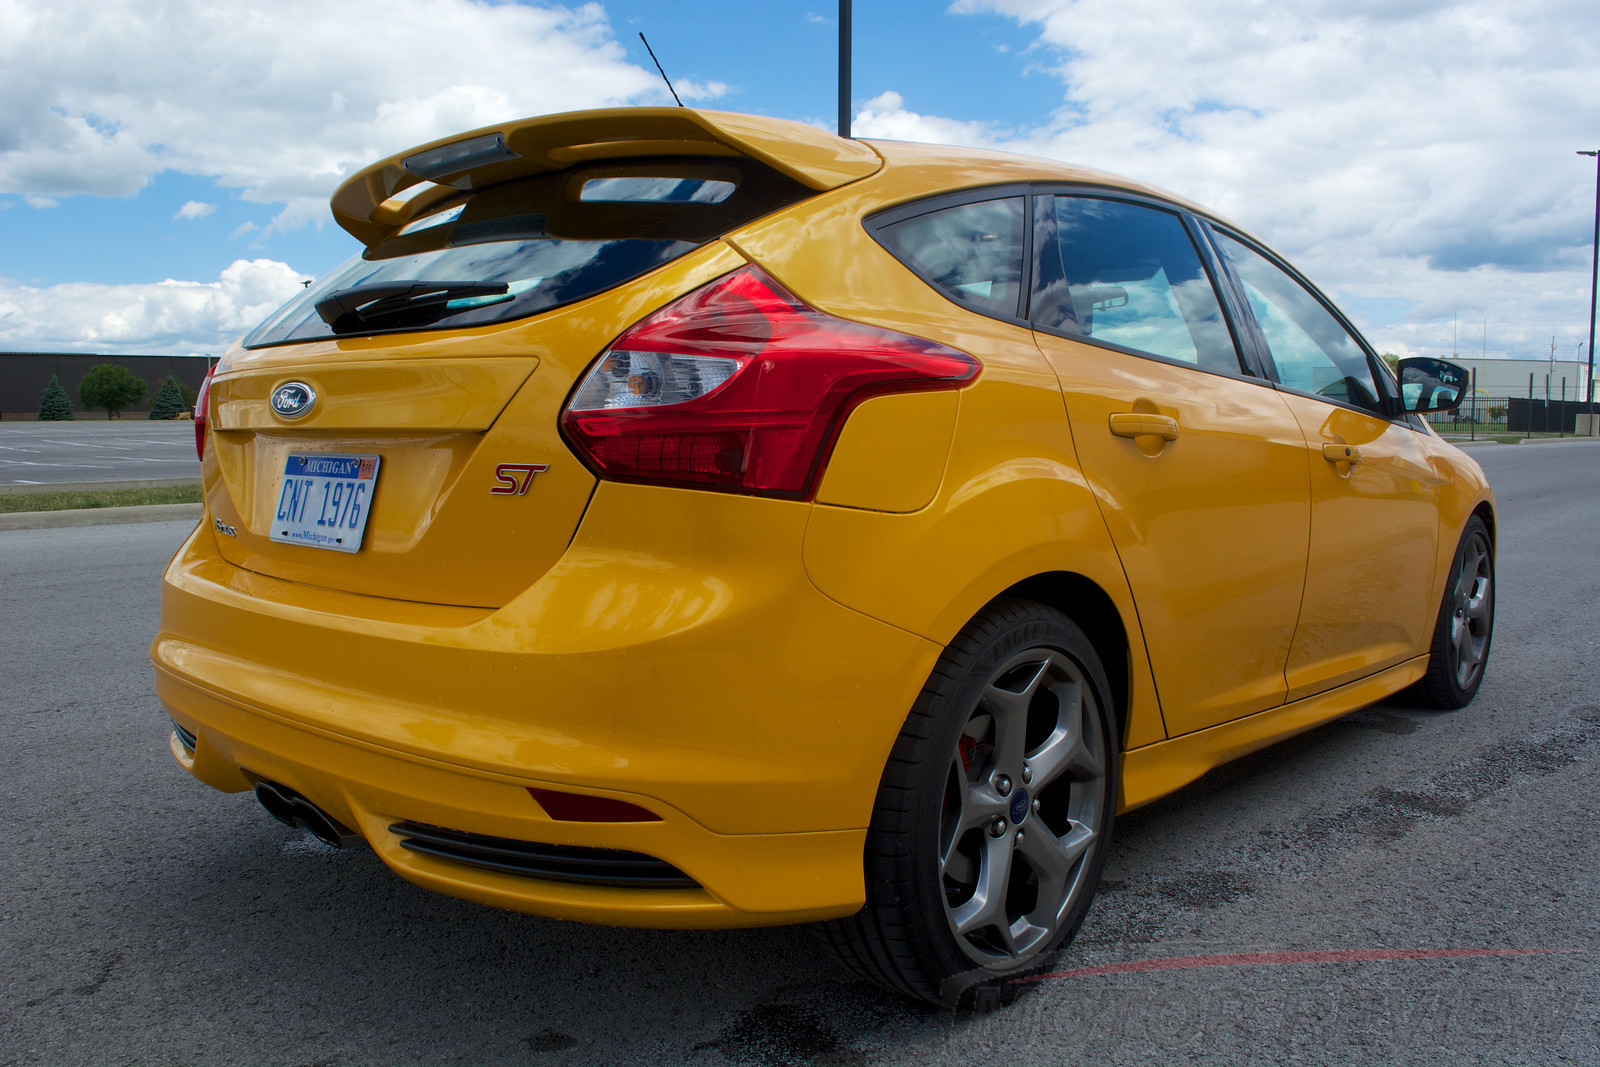 2014 ford focus st review 4 motor review. Black Bedroom Furniture Sets. Home Design Ideas